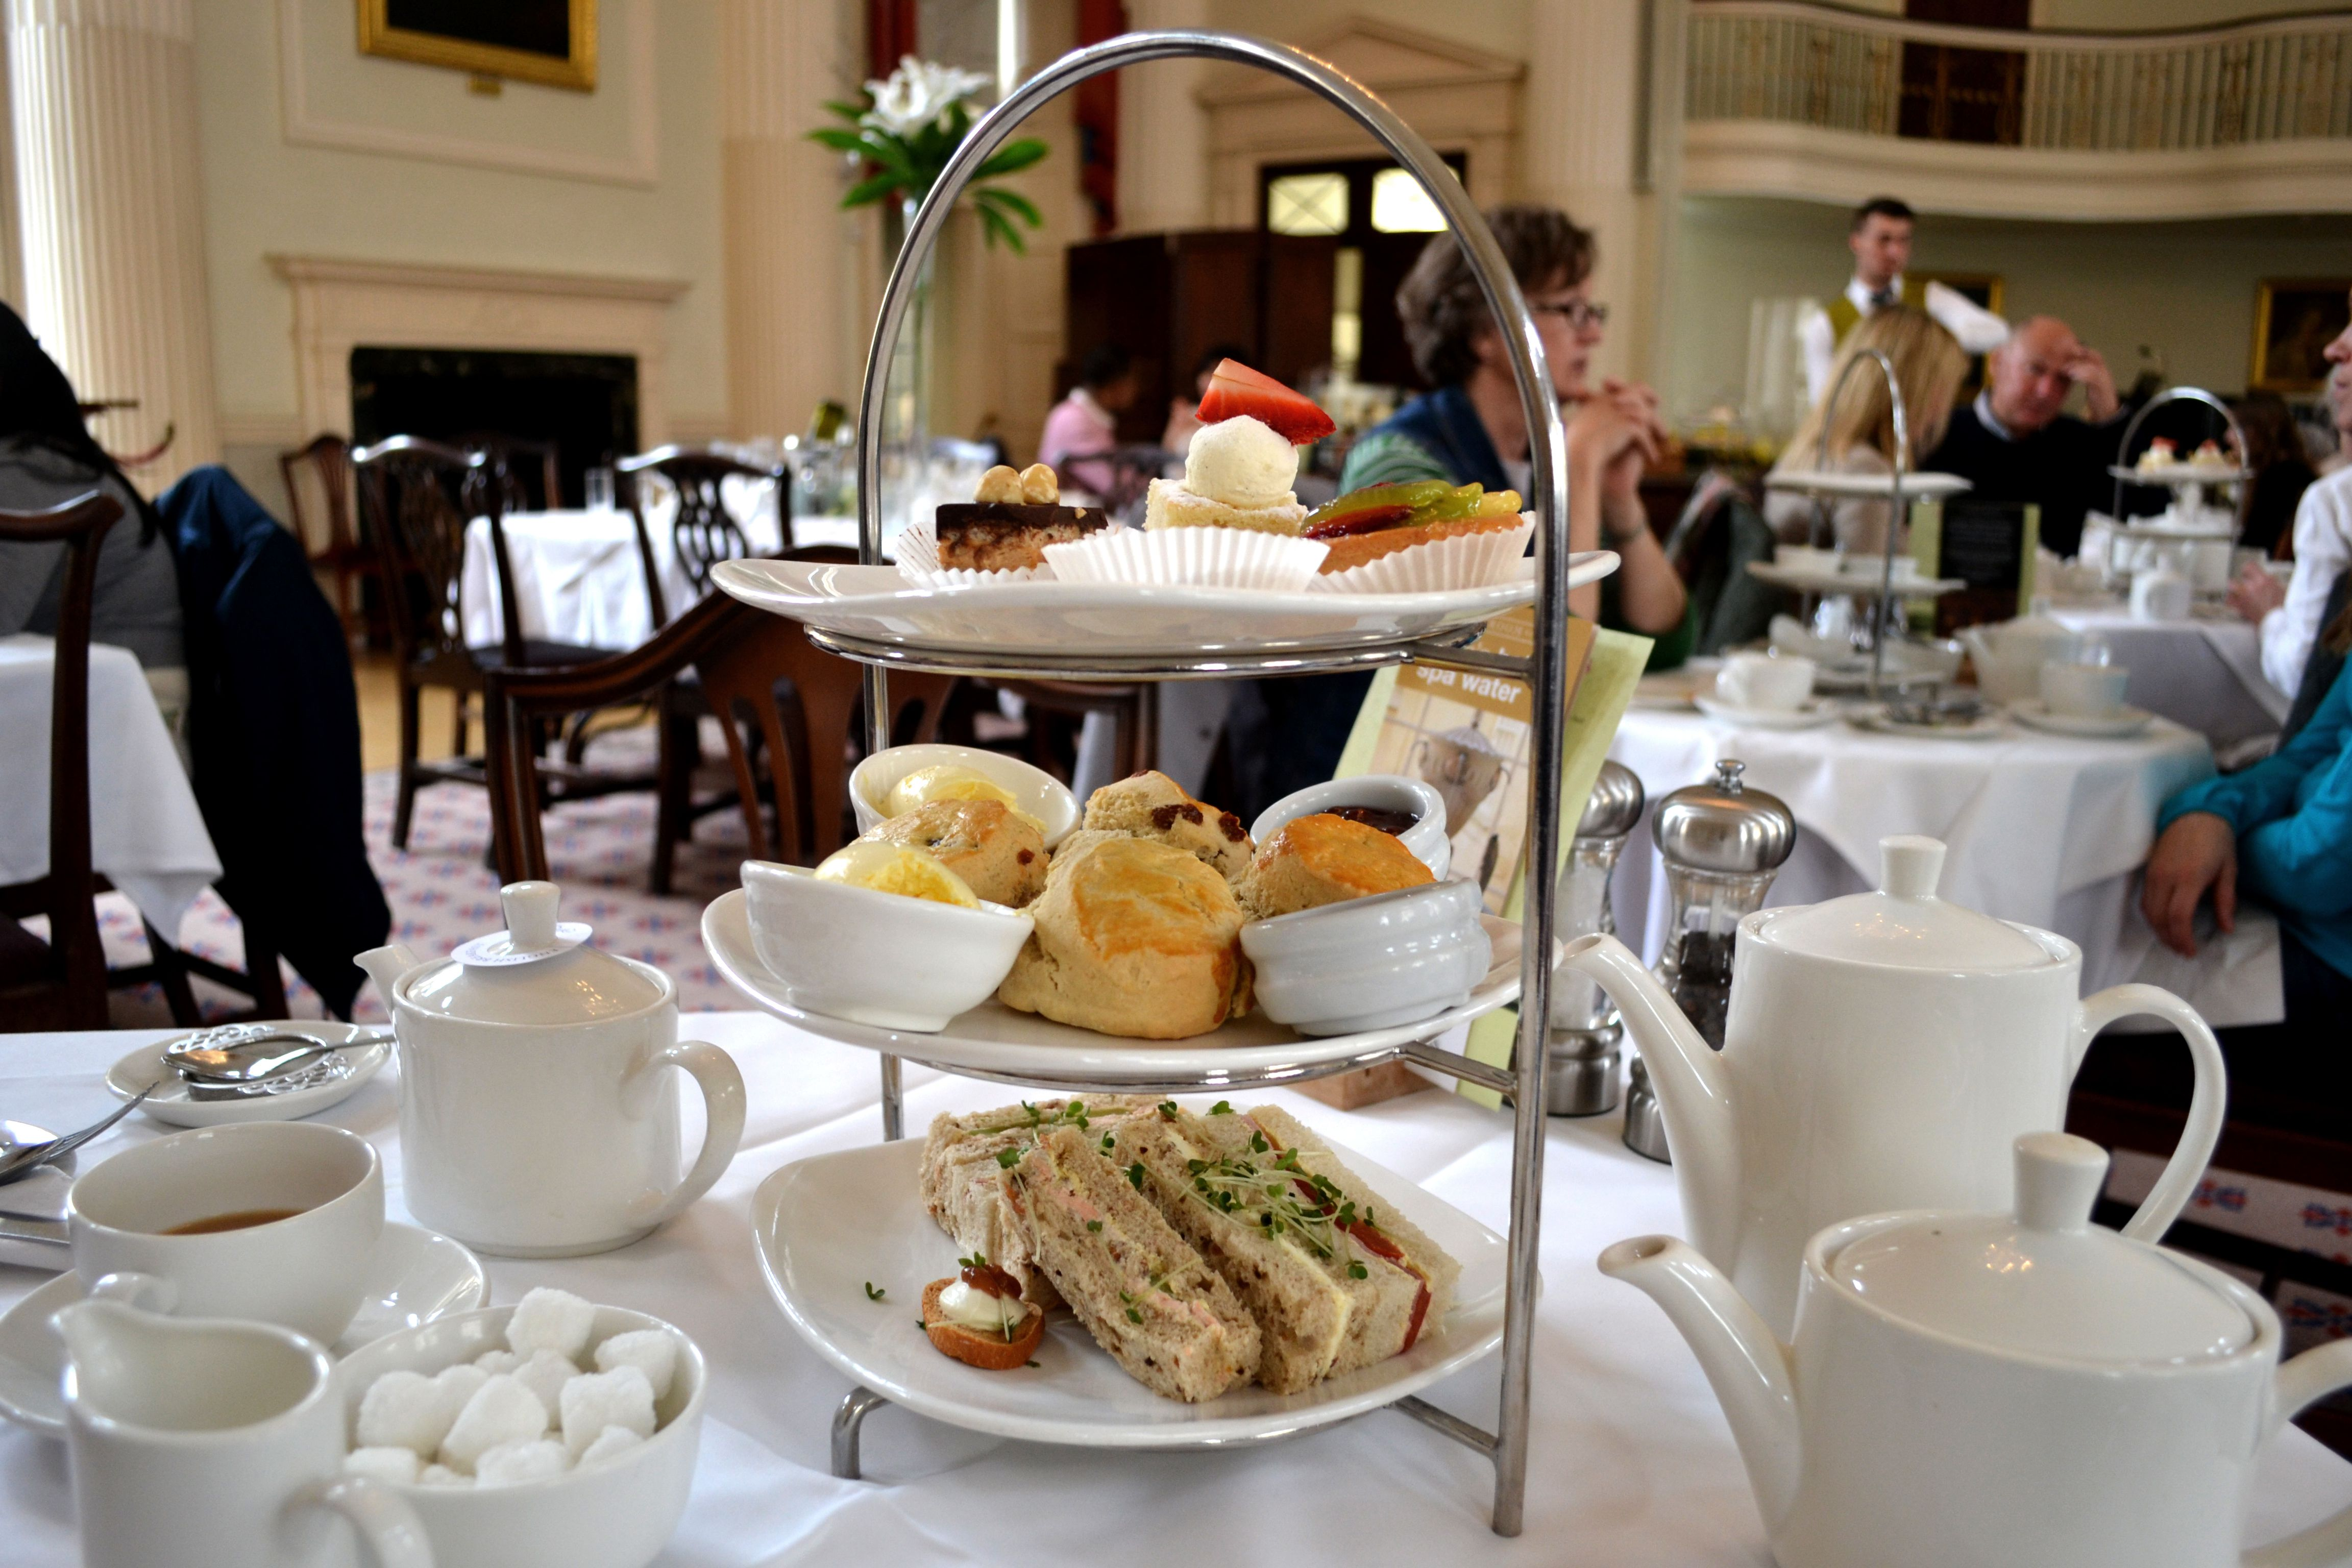 Afternoon tea in the 18th century Pump Room.